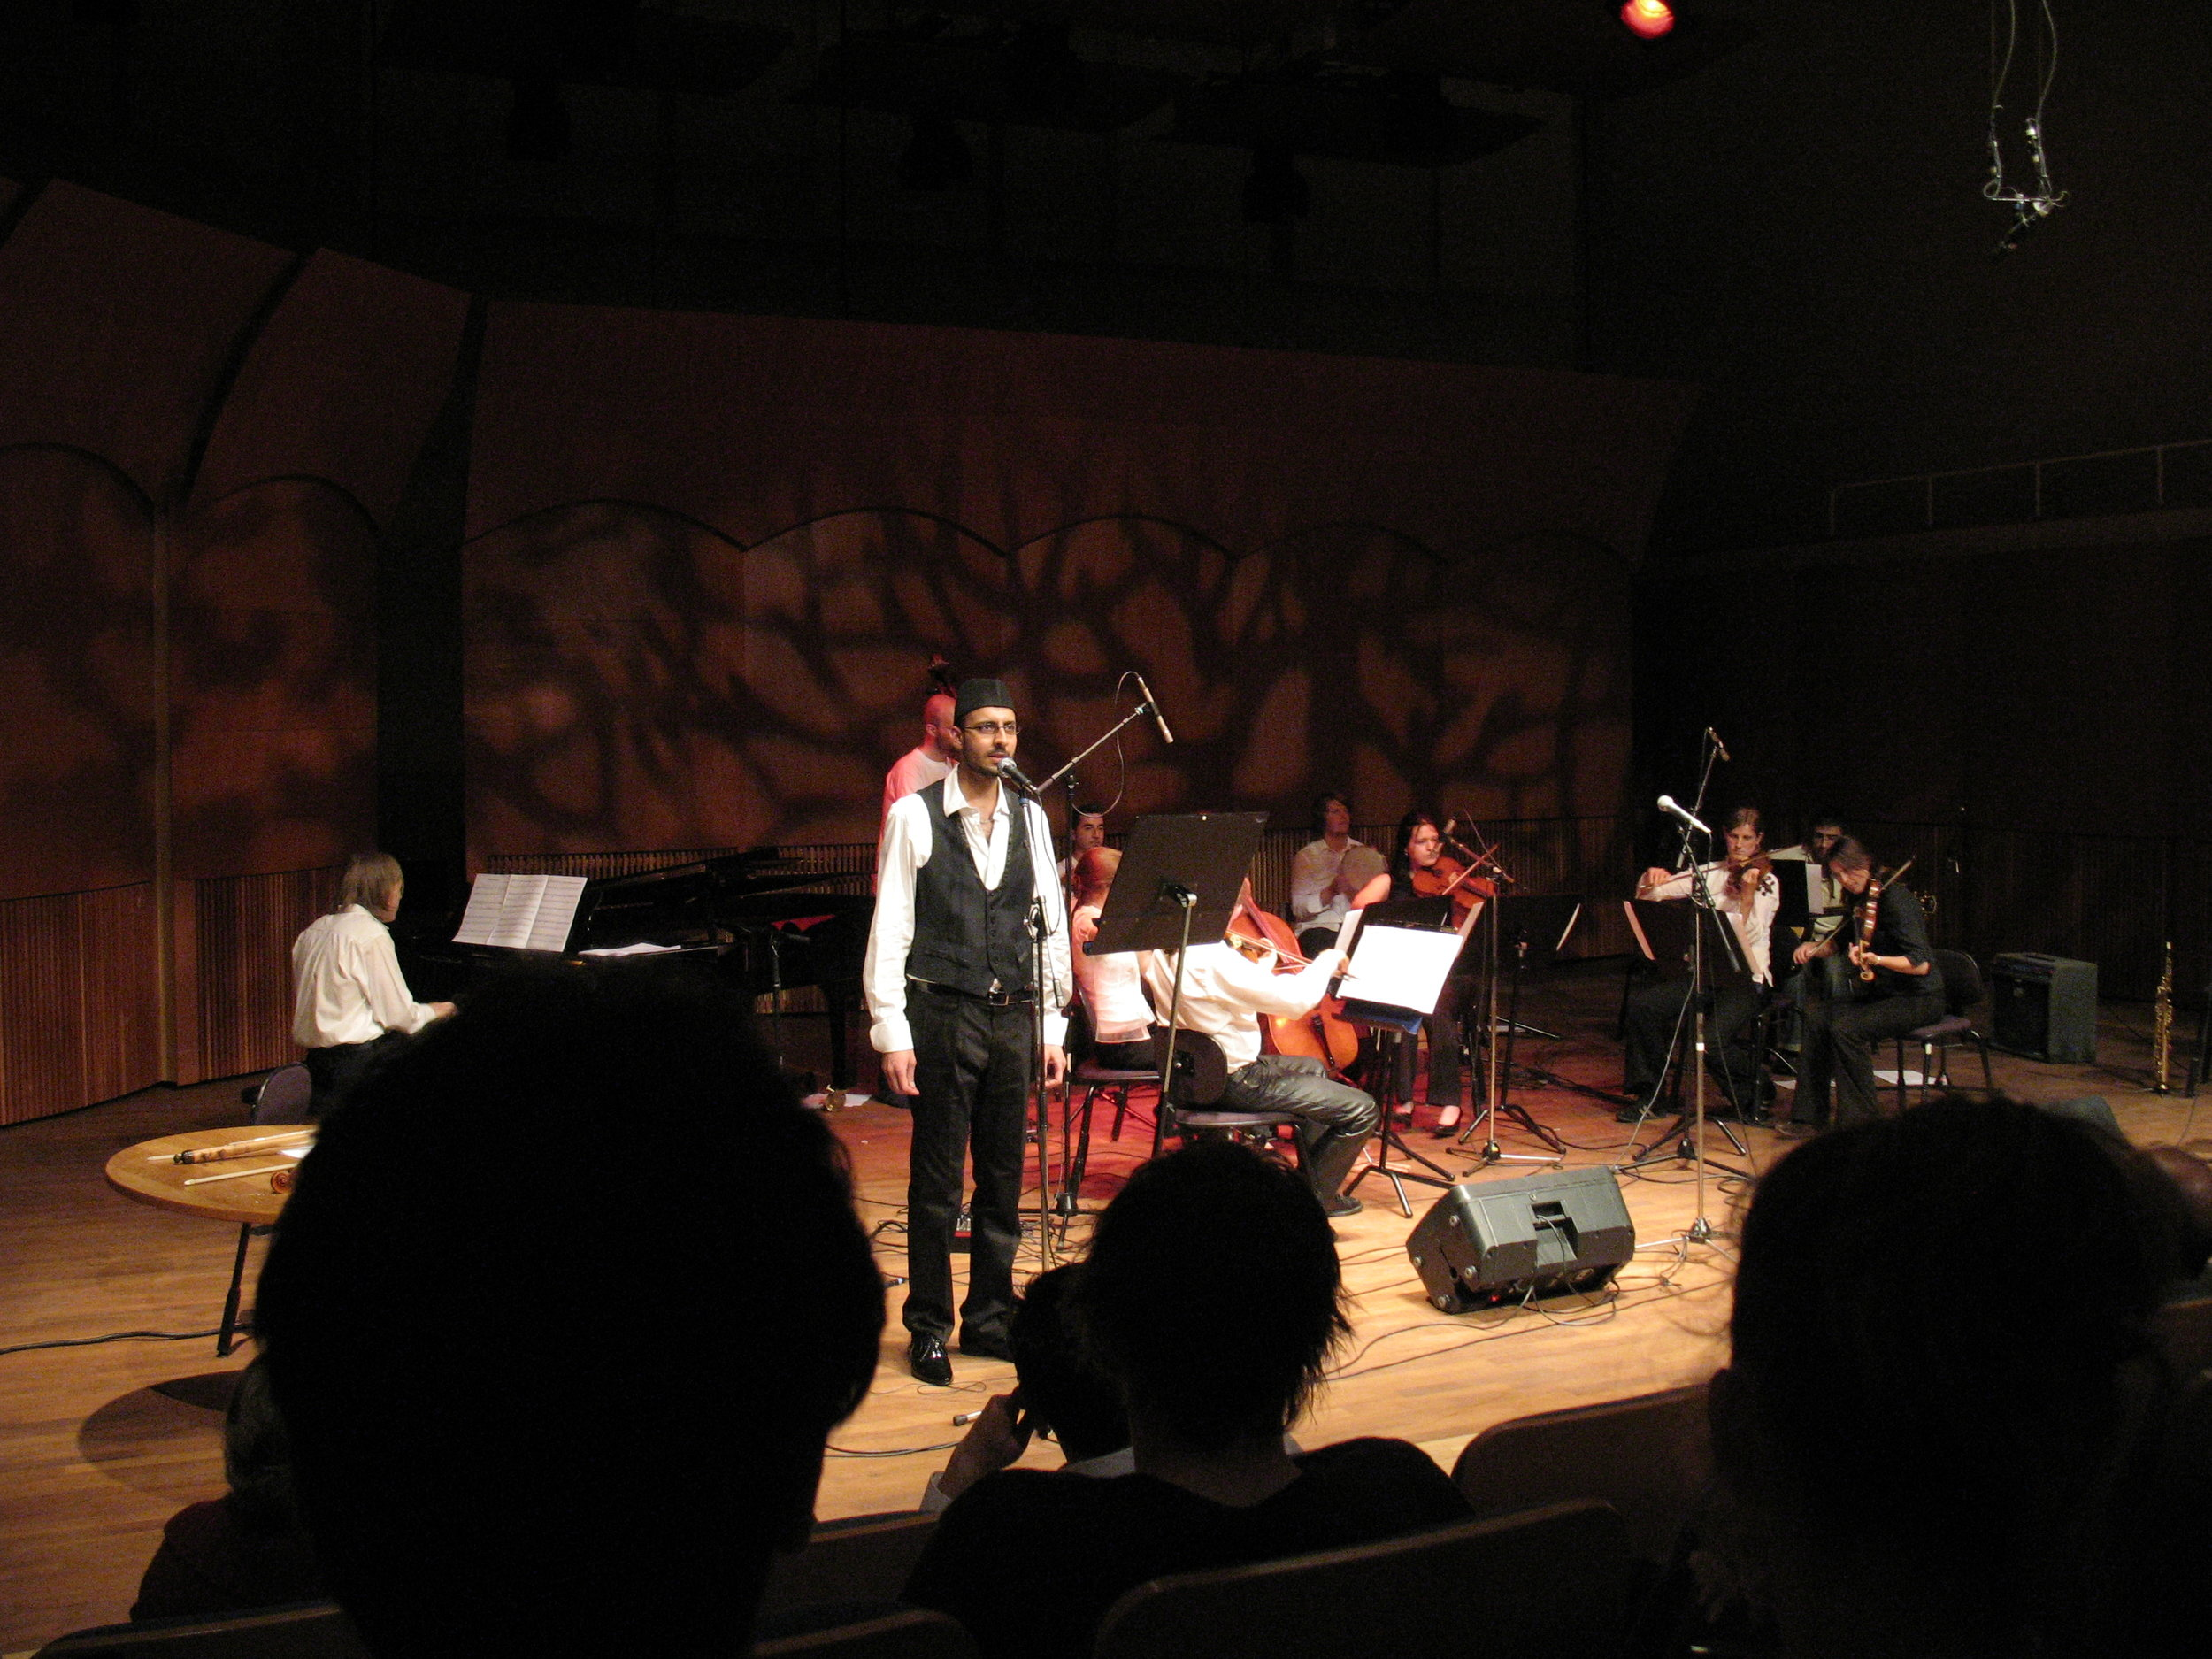 Pictures from the examination concert 053.jpg